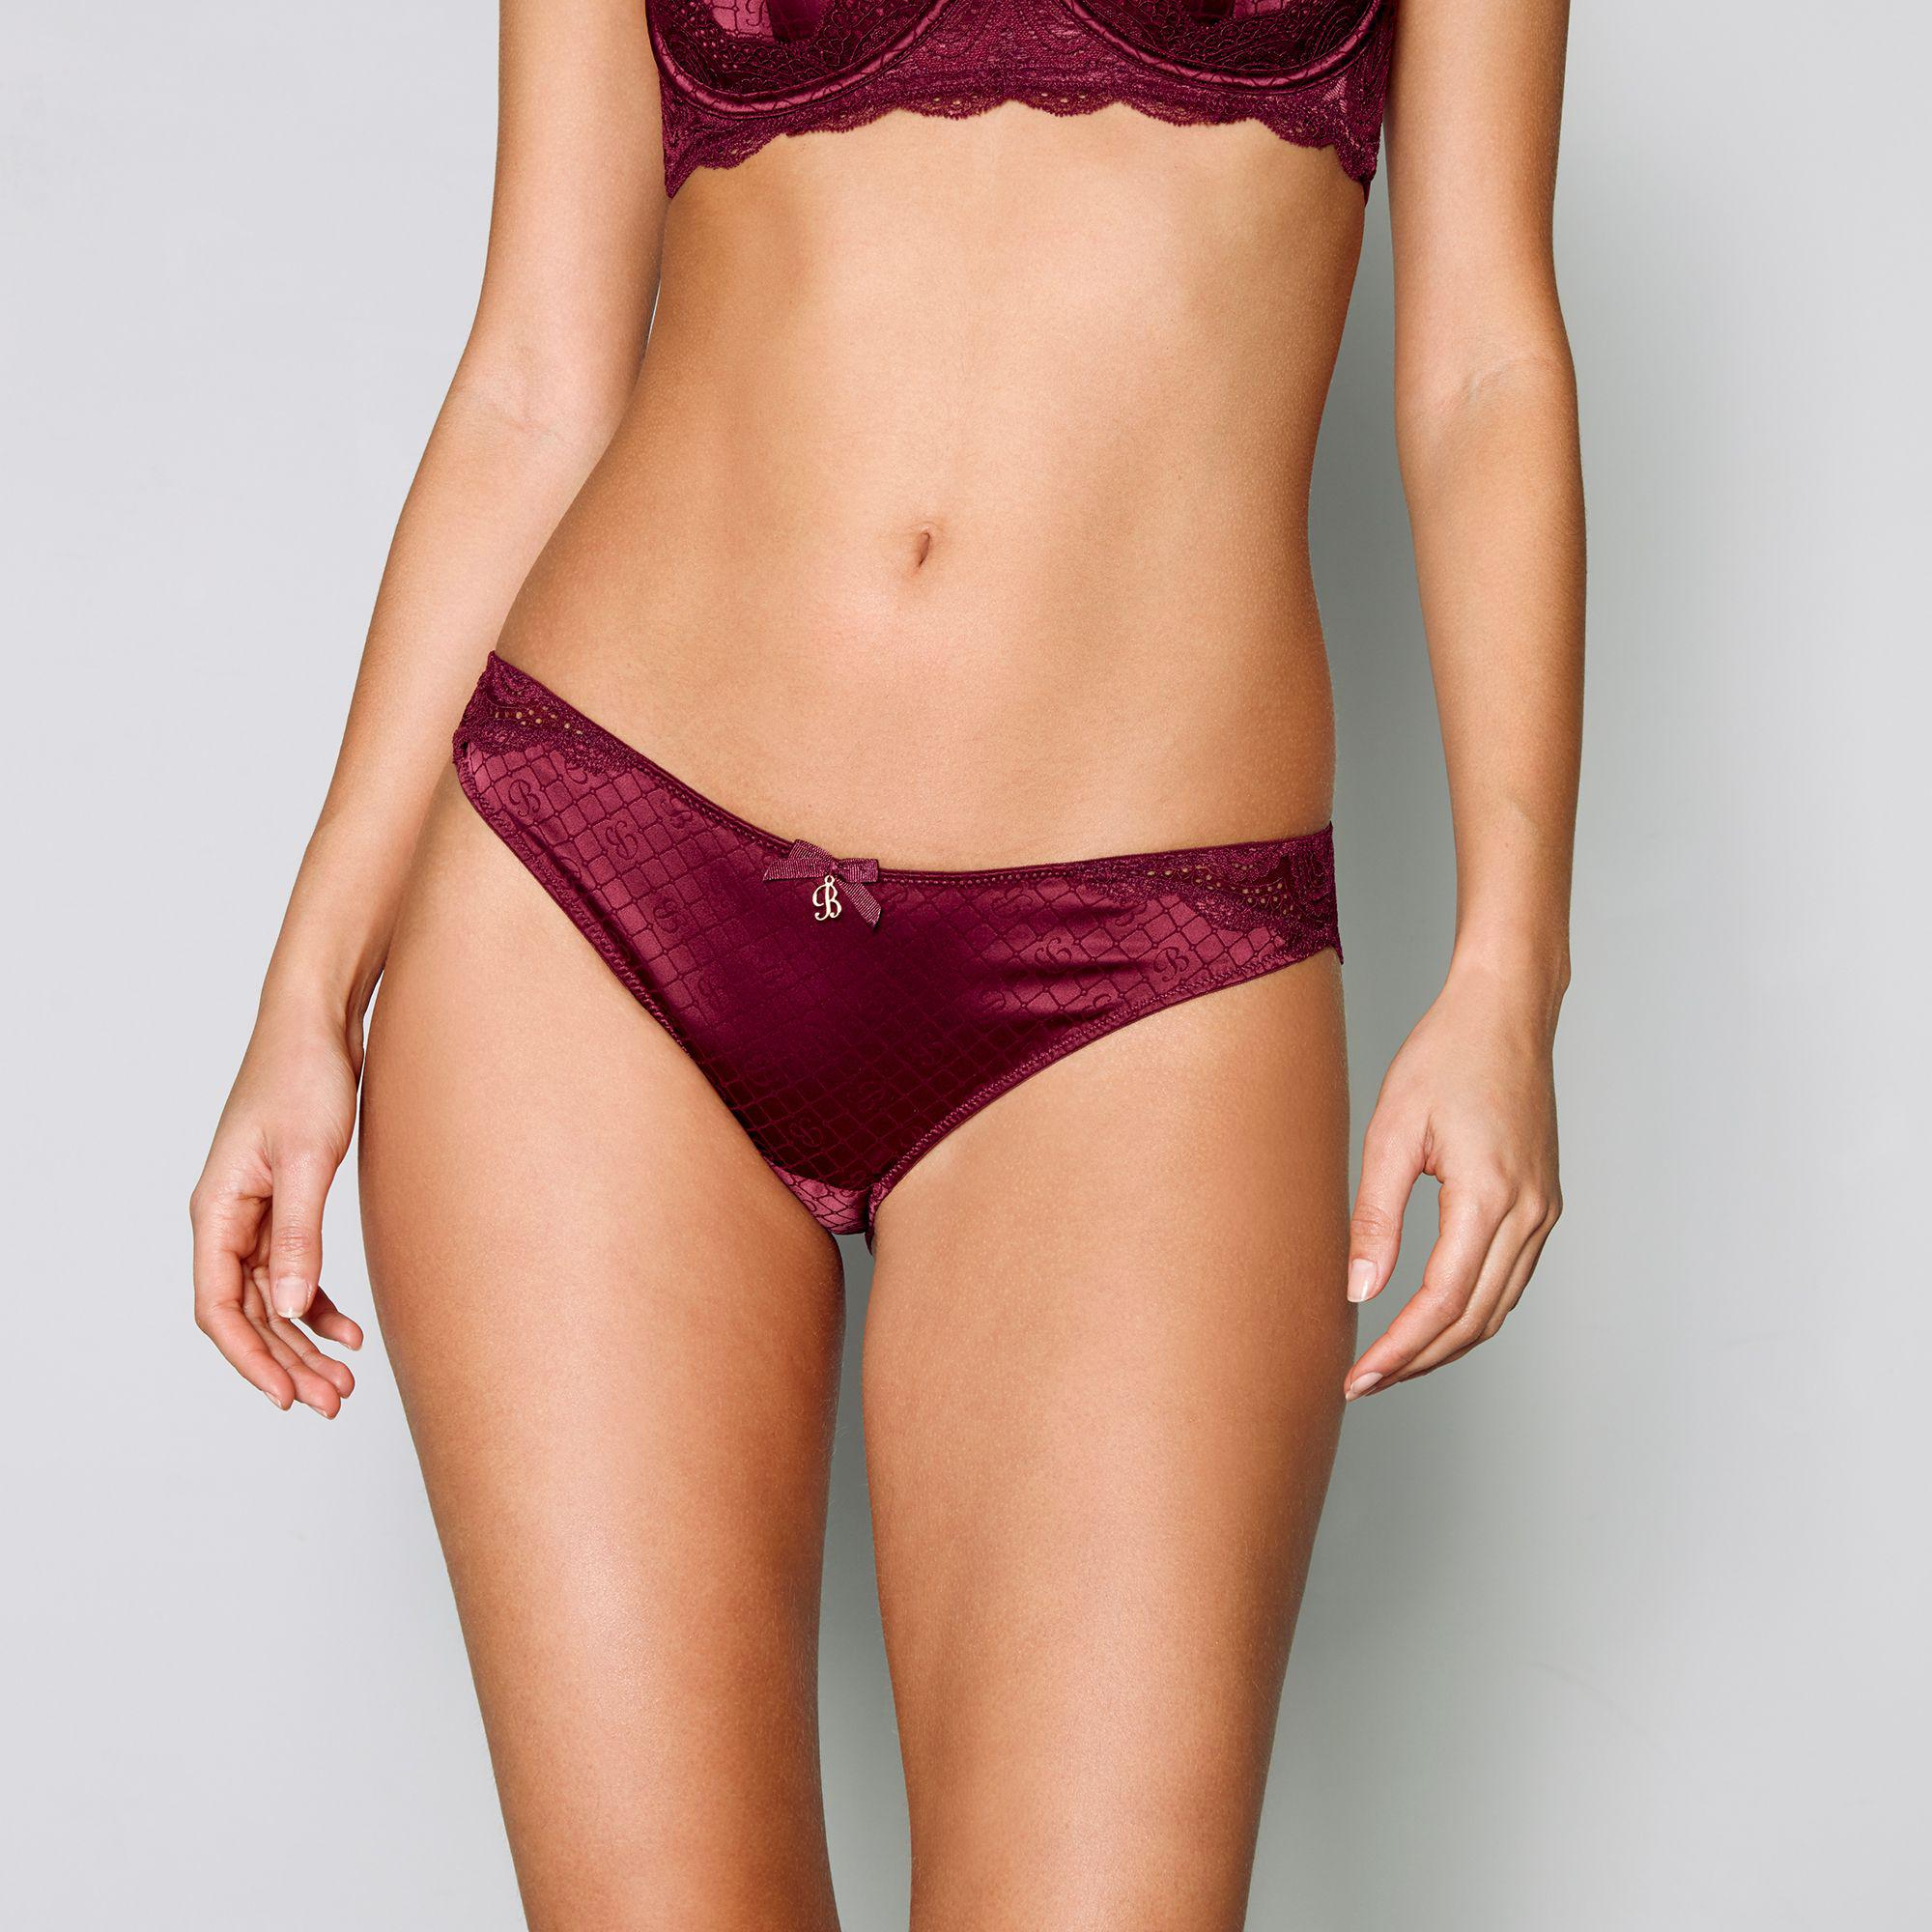 c0c5f33231 Ted Baker Dark Red Jacquard Satin Lace Brazilian Knickers in Red - Lyst